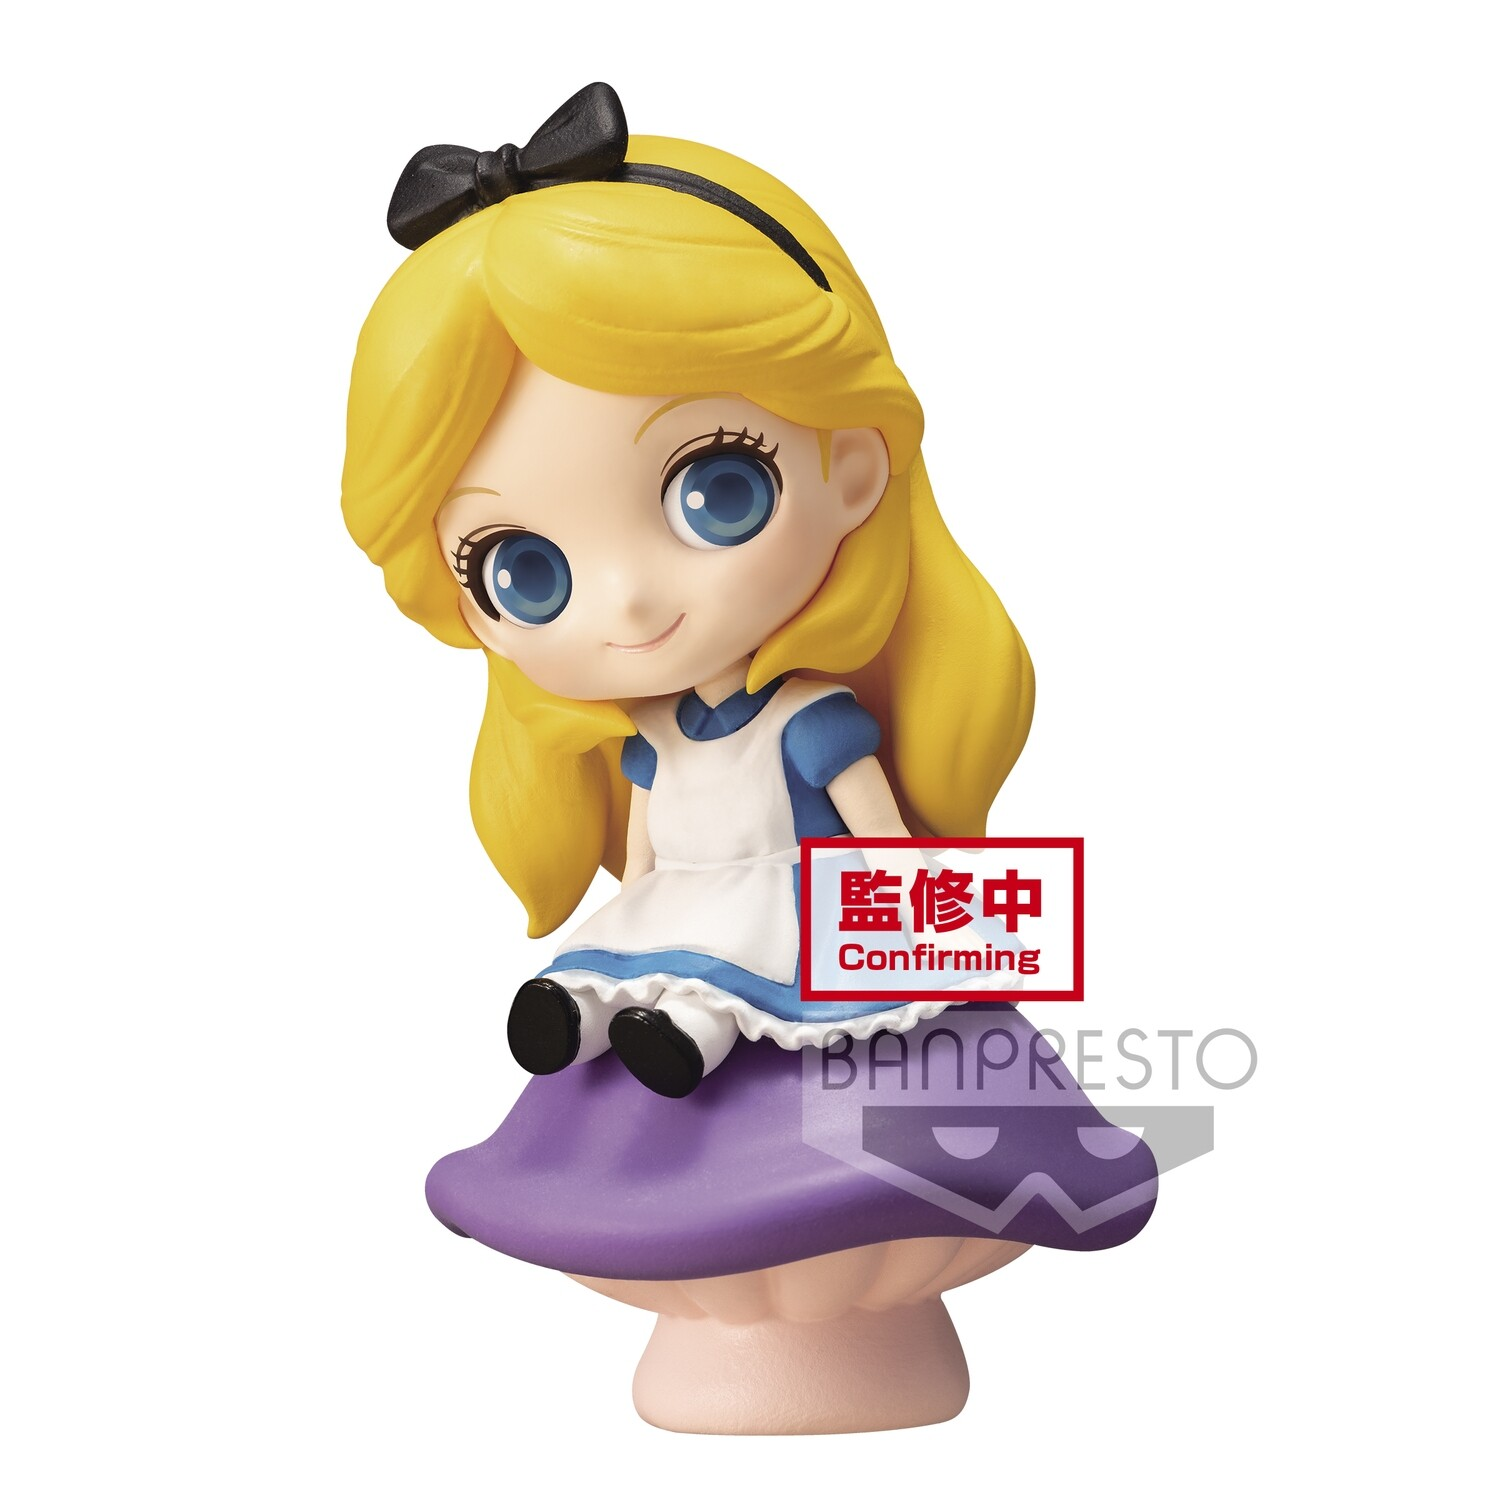 PRE-ORDER #SWEETINY PETIT DISNEY CHARACTERS VOL.1 A:ALICE